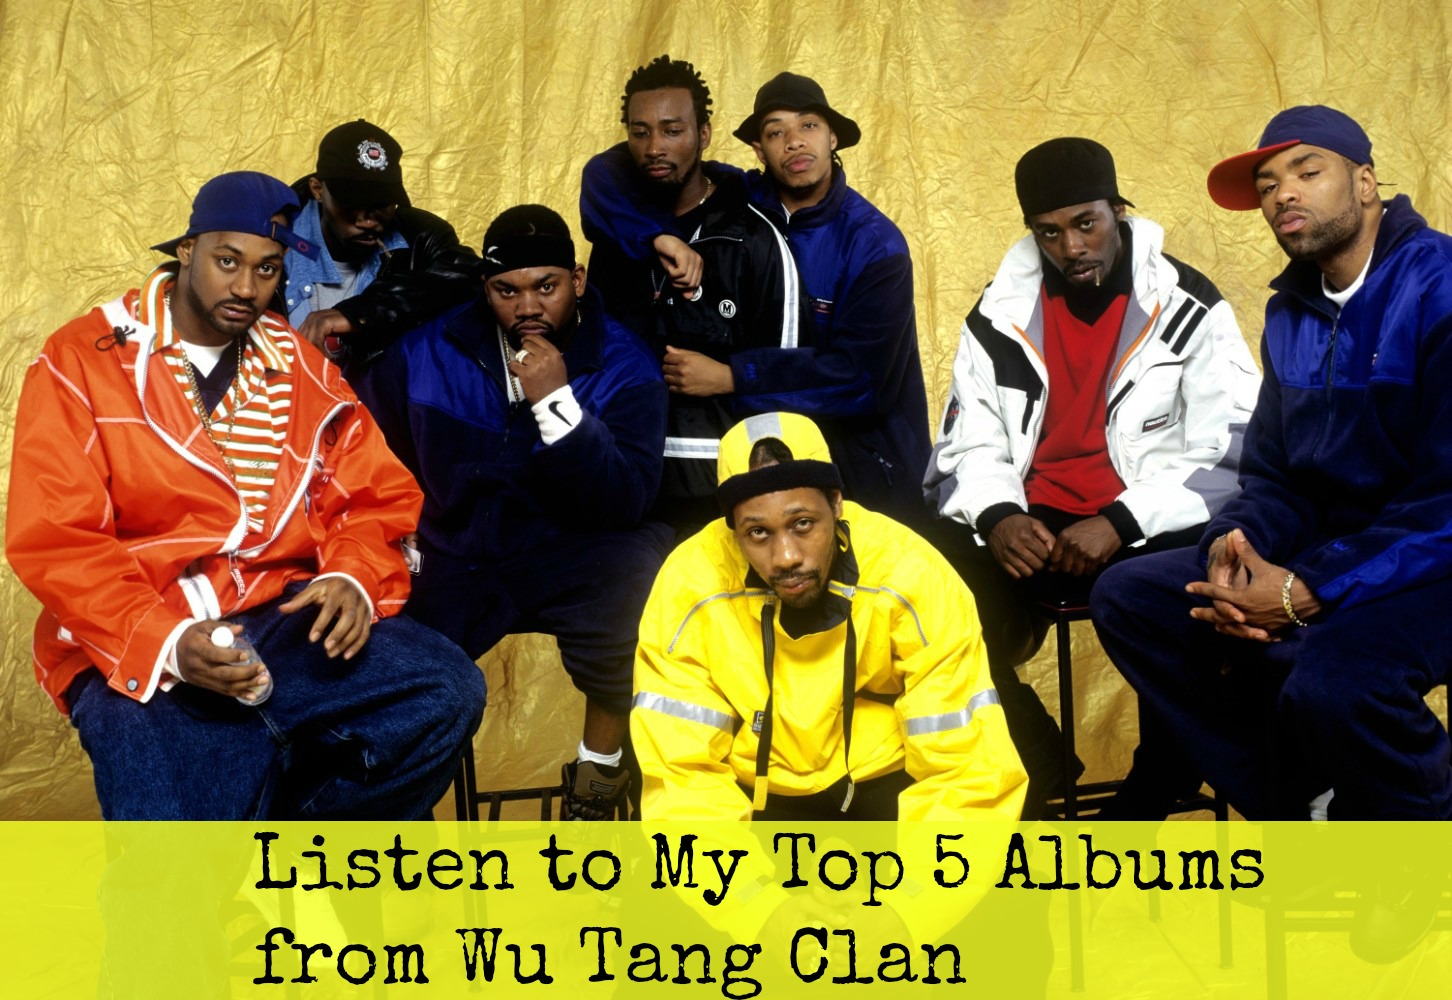 Listen to My Top 5 Albums from Wu Tang Clan